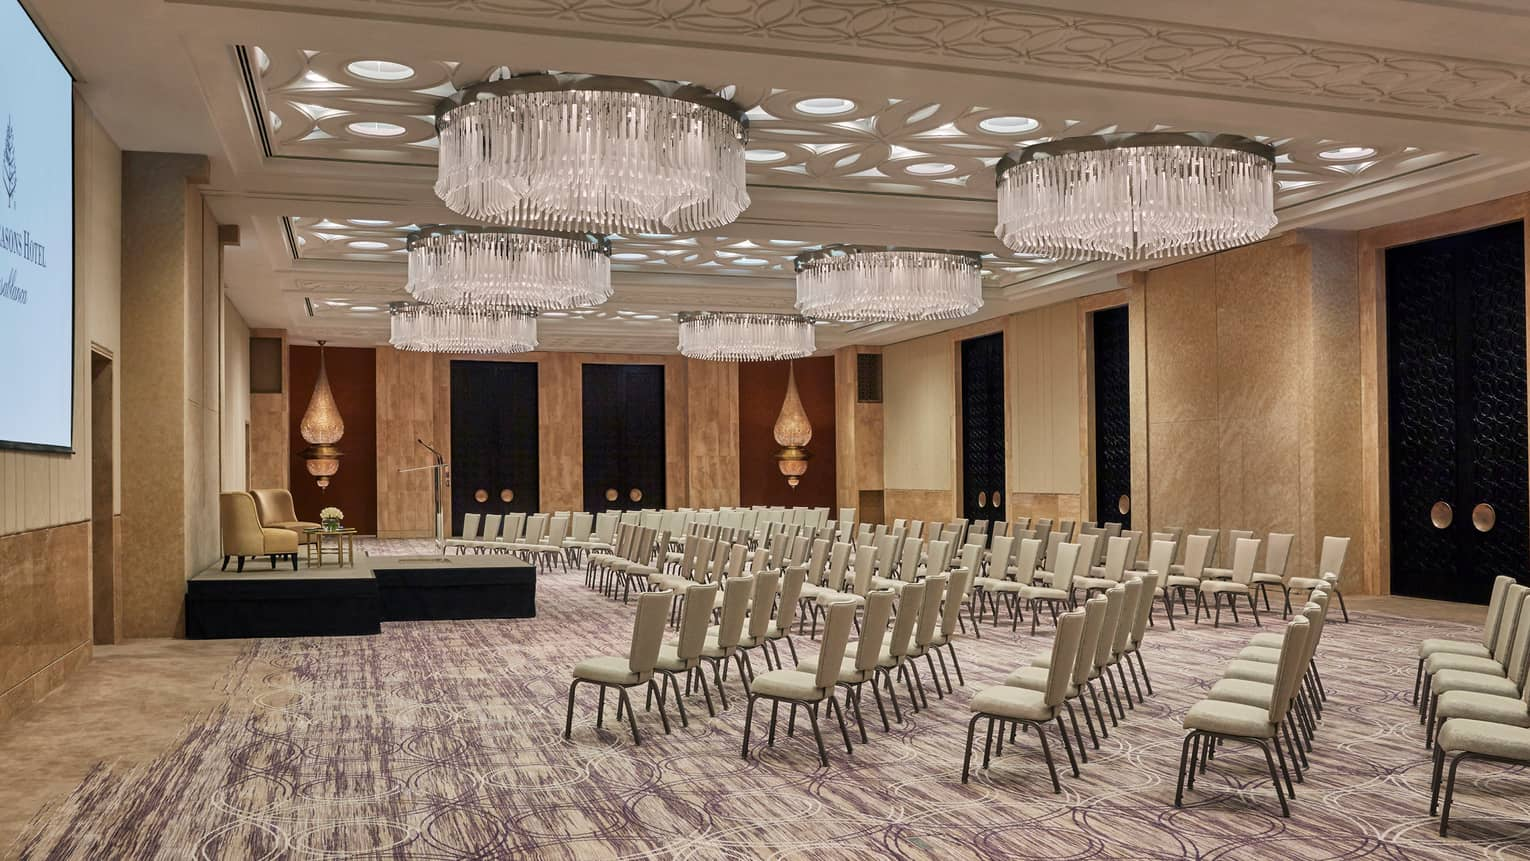 Rows of chairs face small stage in Atlantique ballroom with large chandeliers